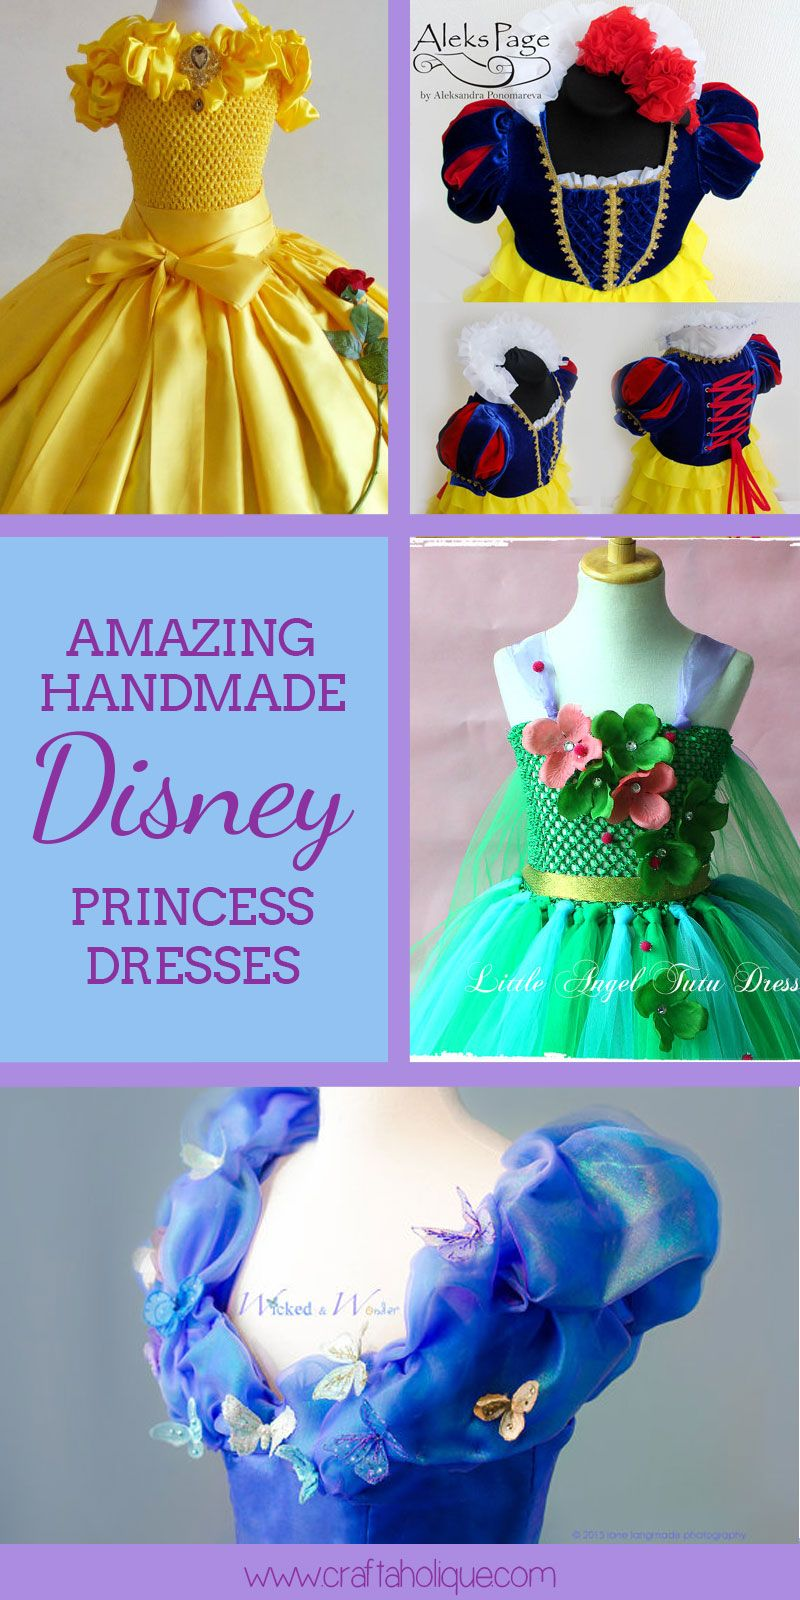 0d18ba8531db Looking for a Disney Princess Dress with a difference? Check out these  incredible handmade Disney Princess Dresses from talented designers on Etsy.